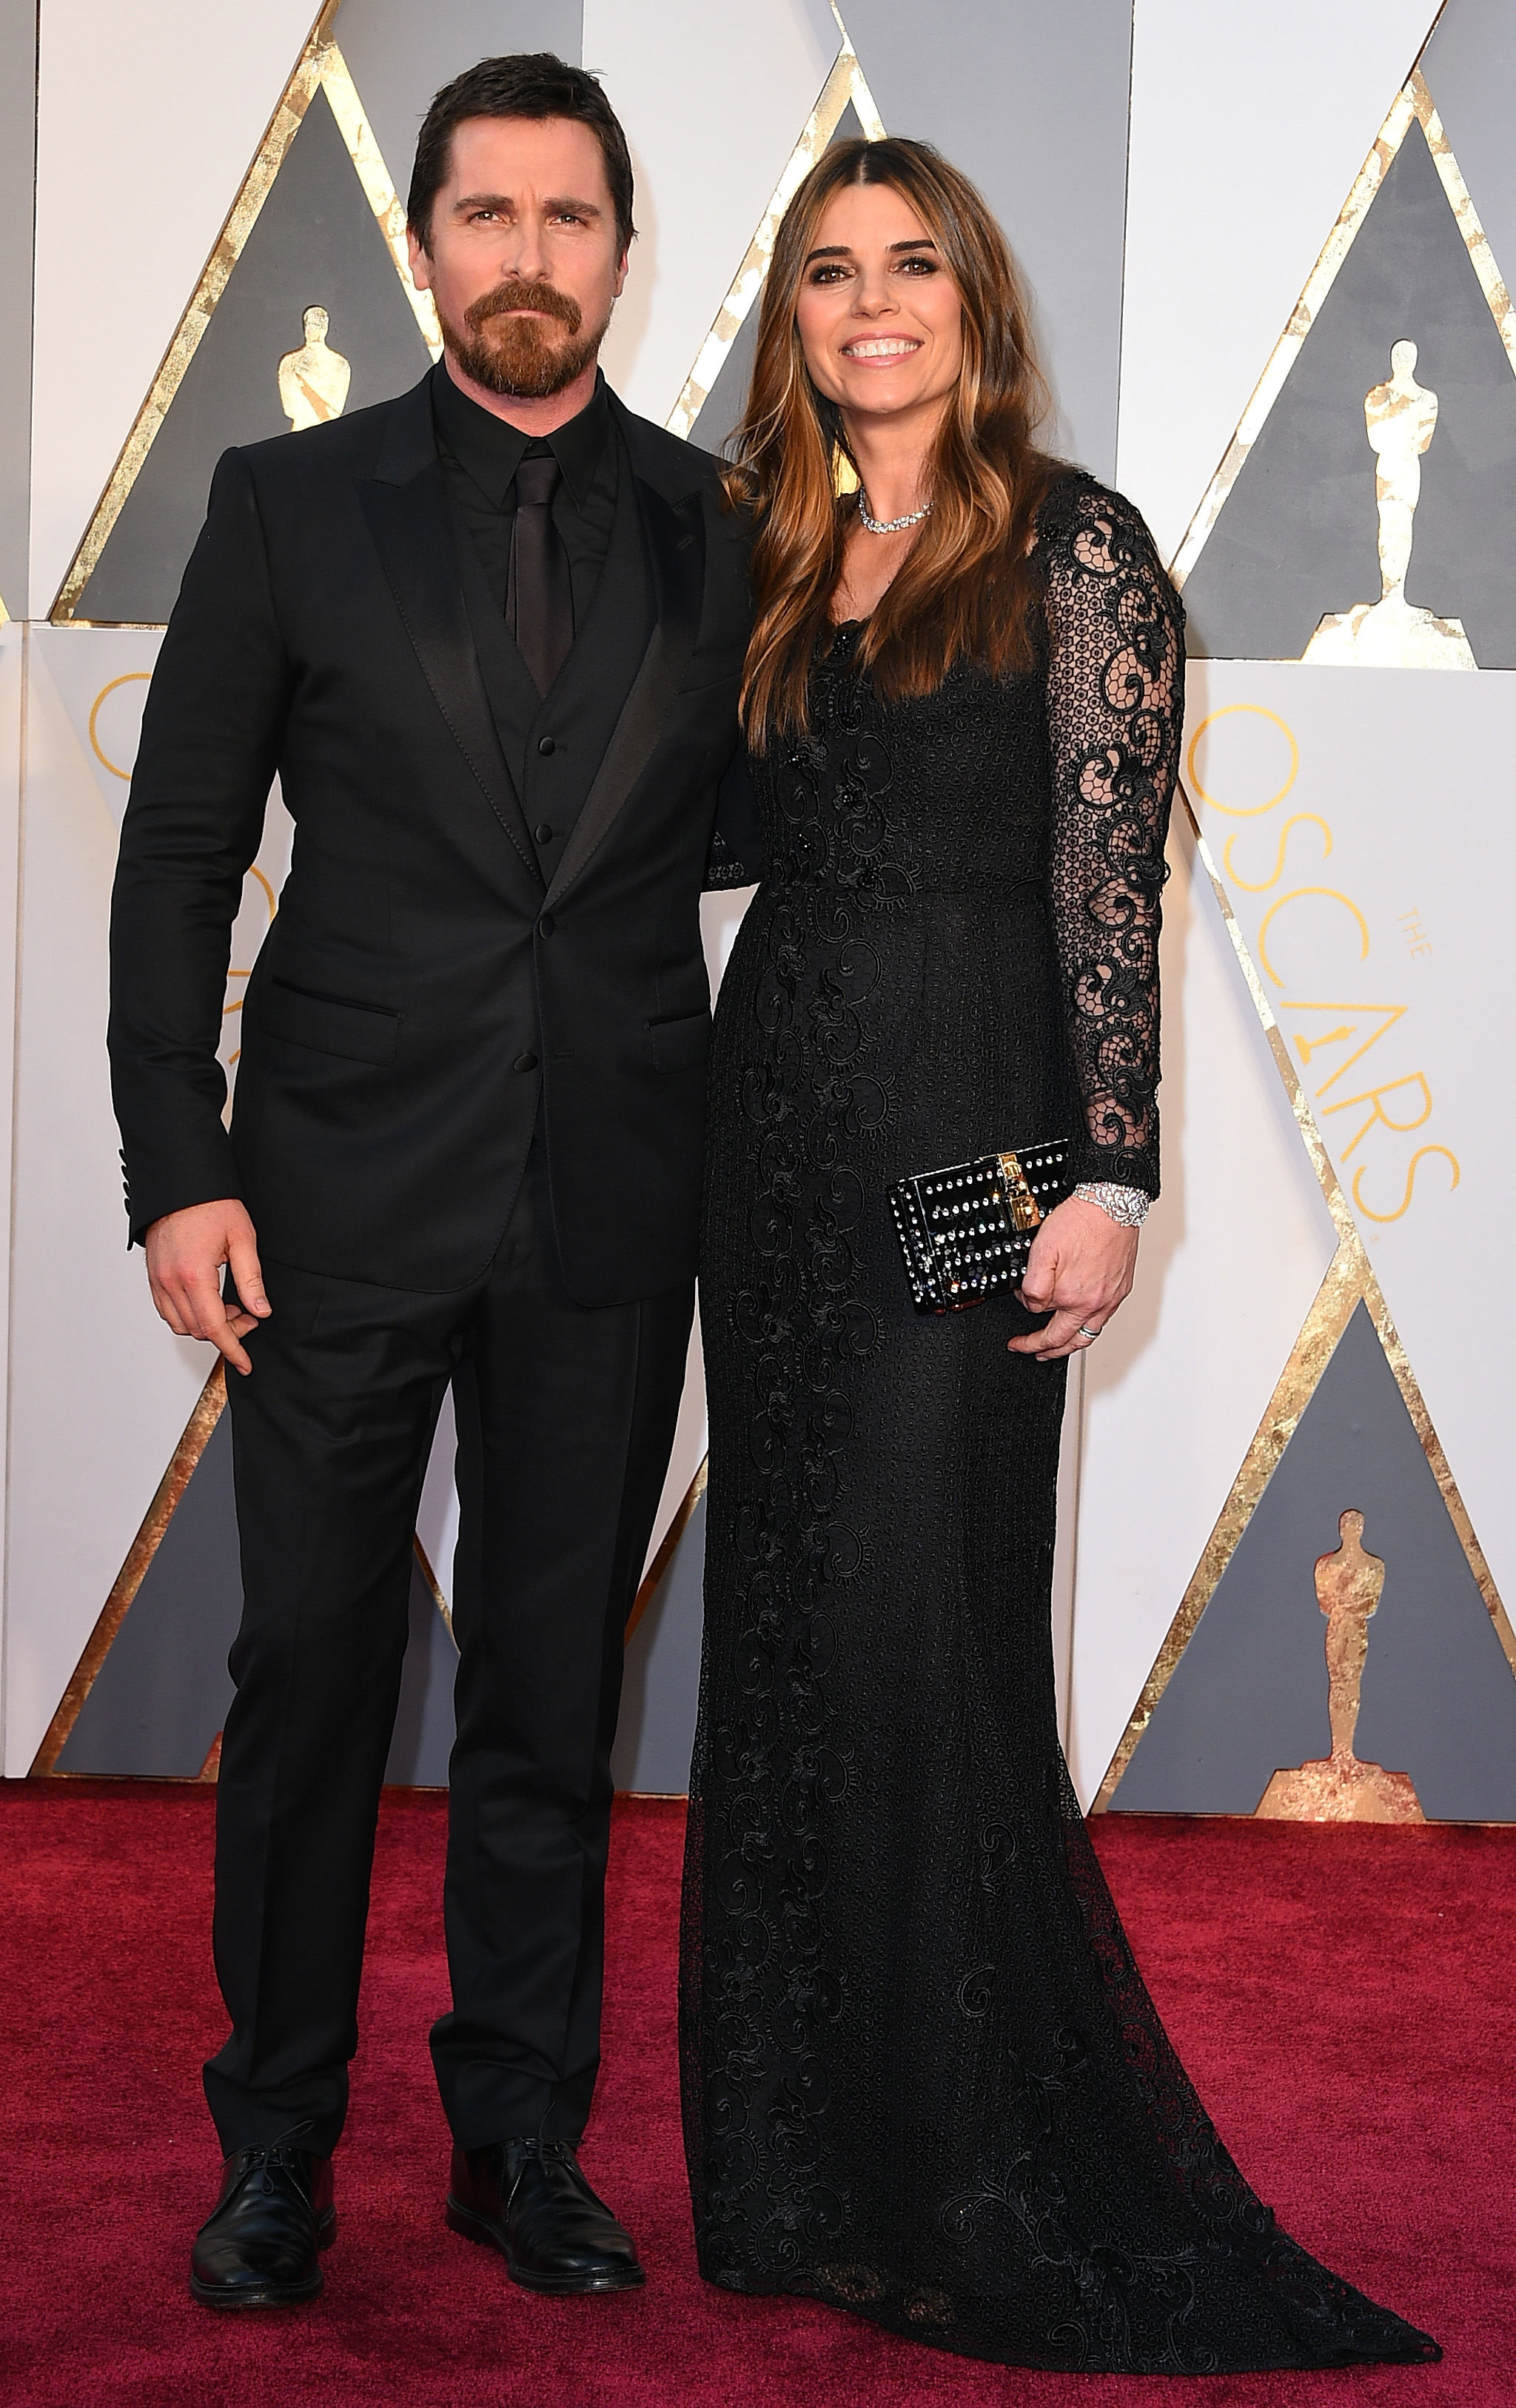 Christian Bale and Sibi Blazic attend the 88th Annual Academy Awards on Feb. 28, 2016 in Hollywood, Calif.